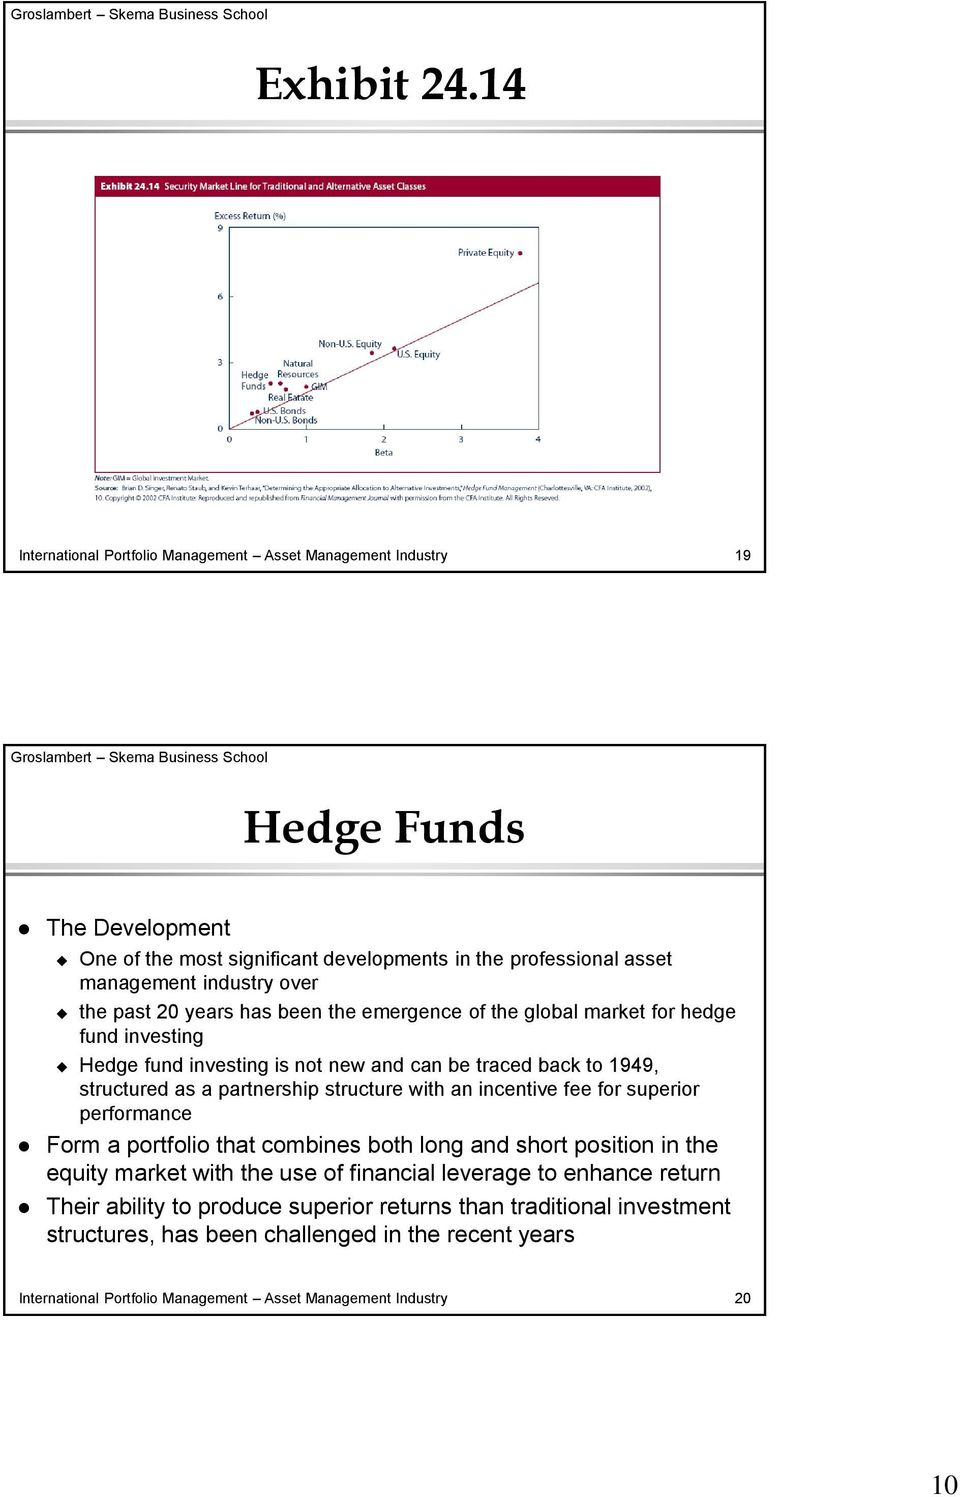 the past 20 years has been the emergence of the global market for hedge fund investing Hedge fund investing is not new and can be traced back to 1949, structured as a partnership structure